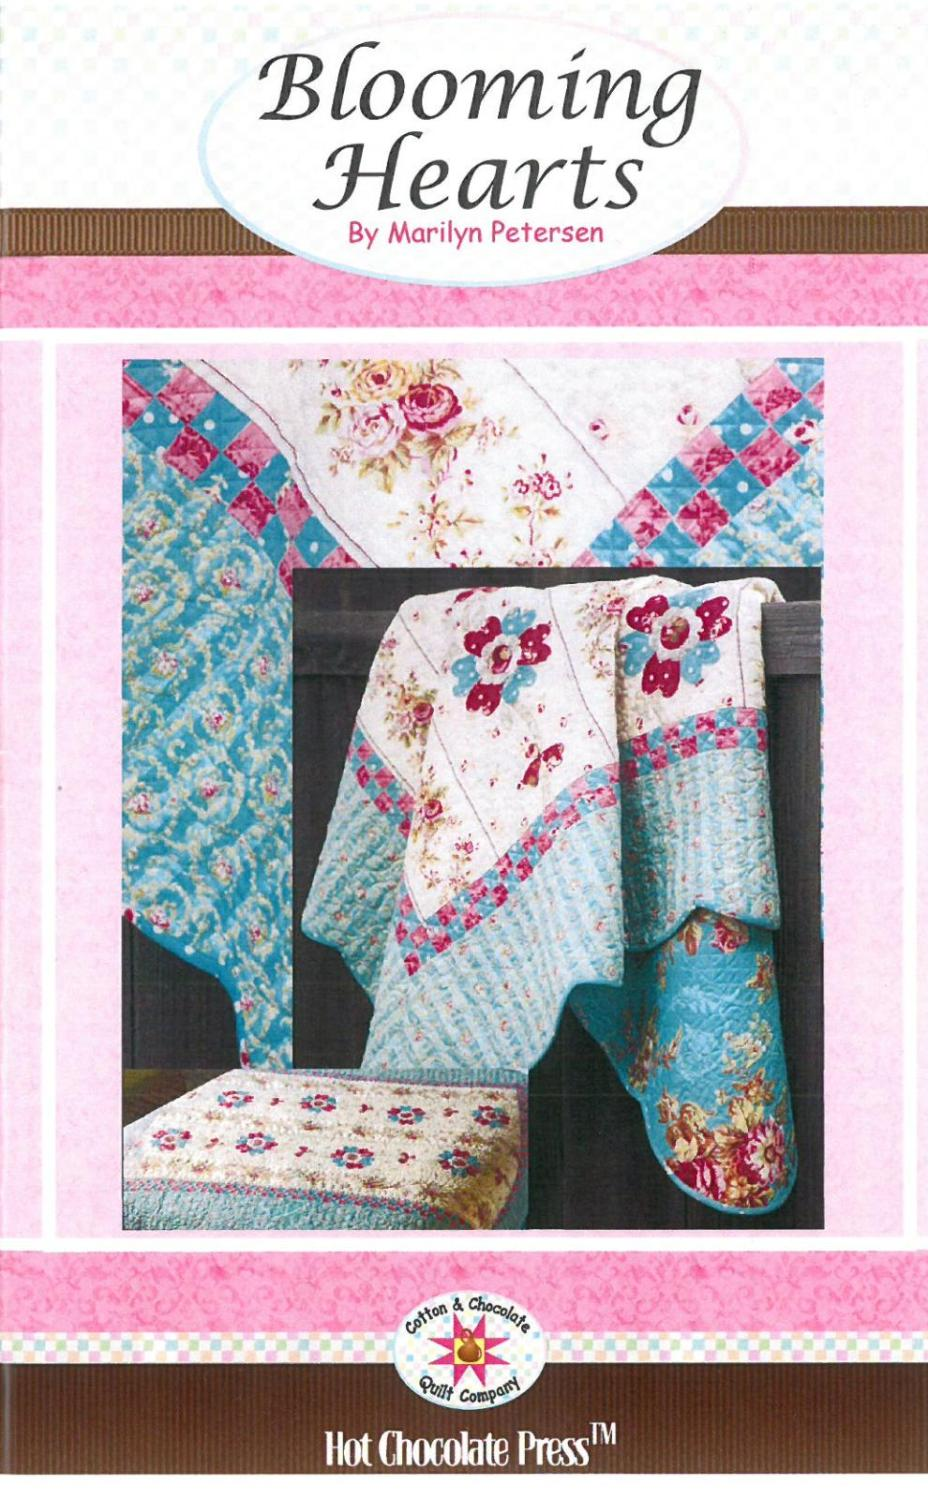 This quilt features printed and appliqued flowers with a checkerboard inner border and large blue and pink flowered outer border.